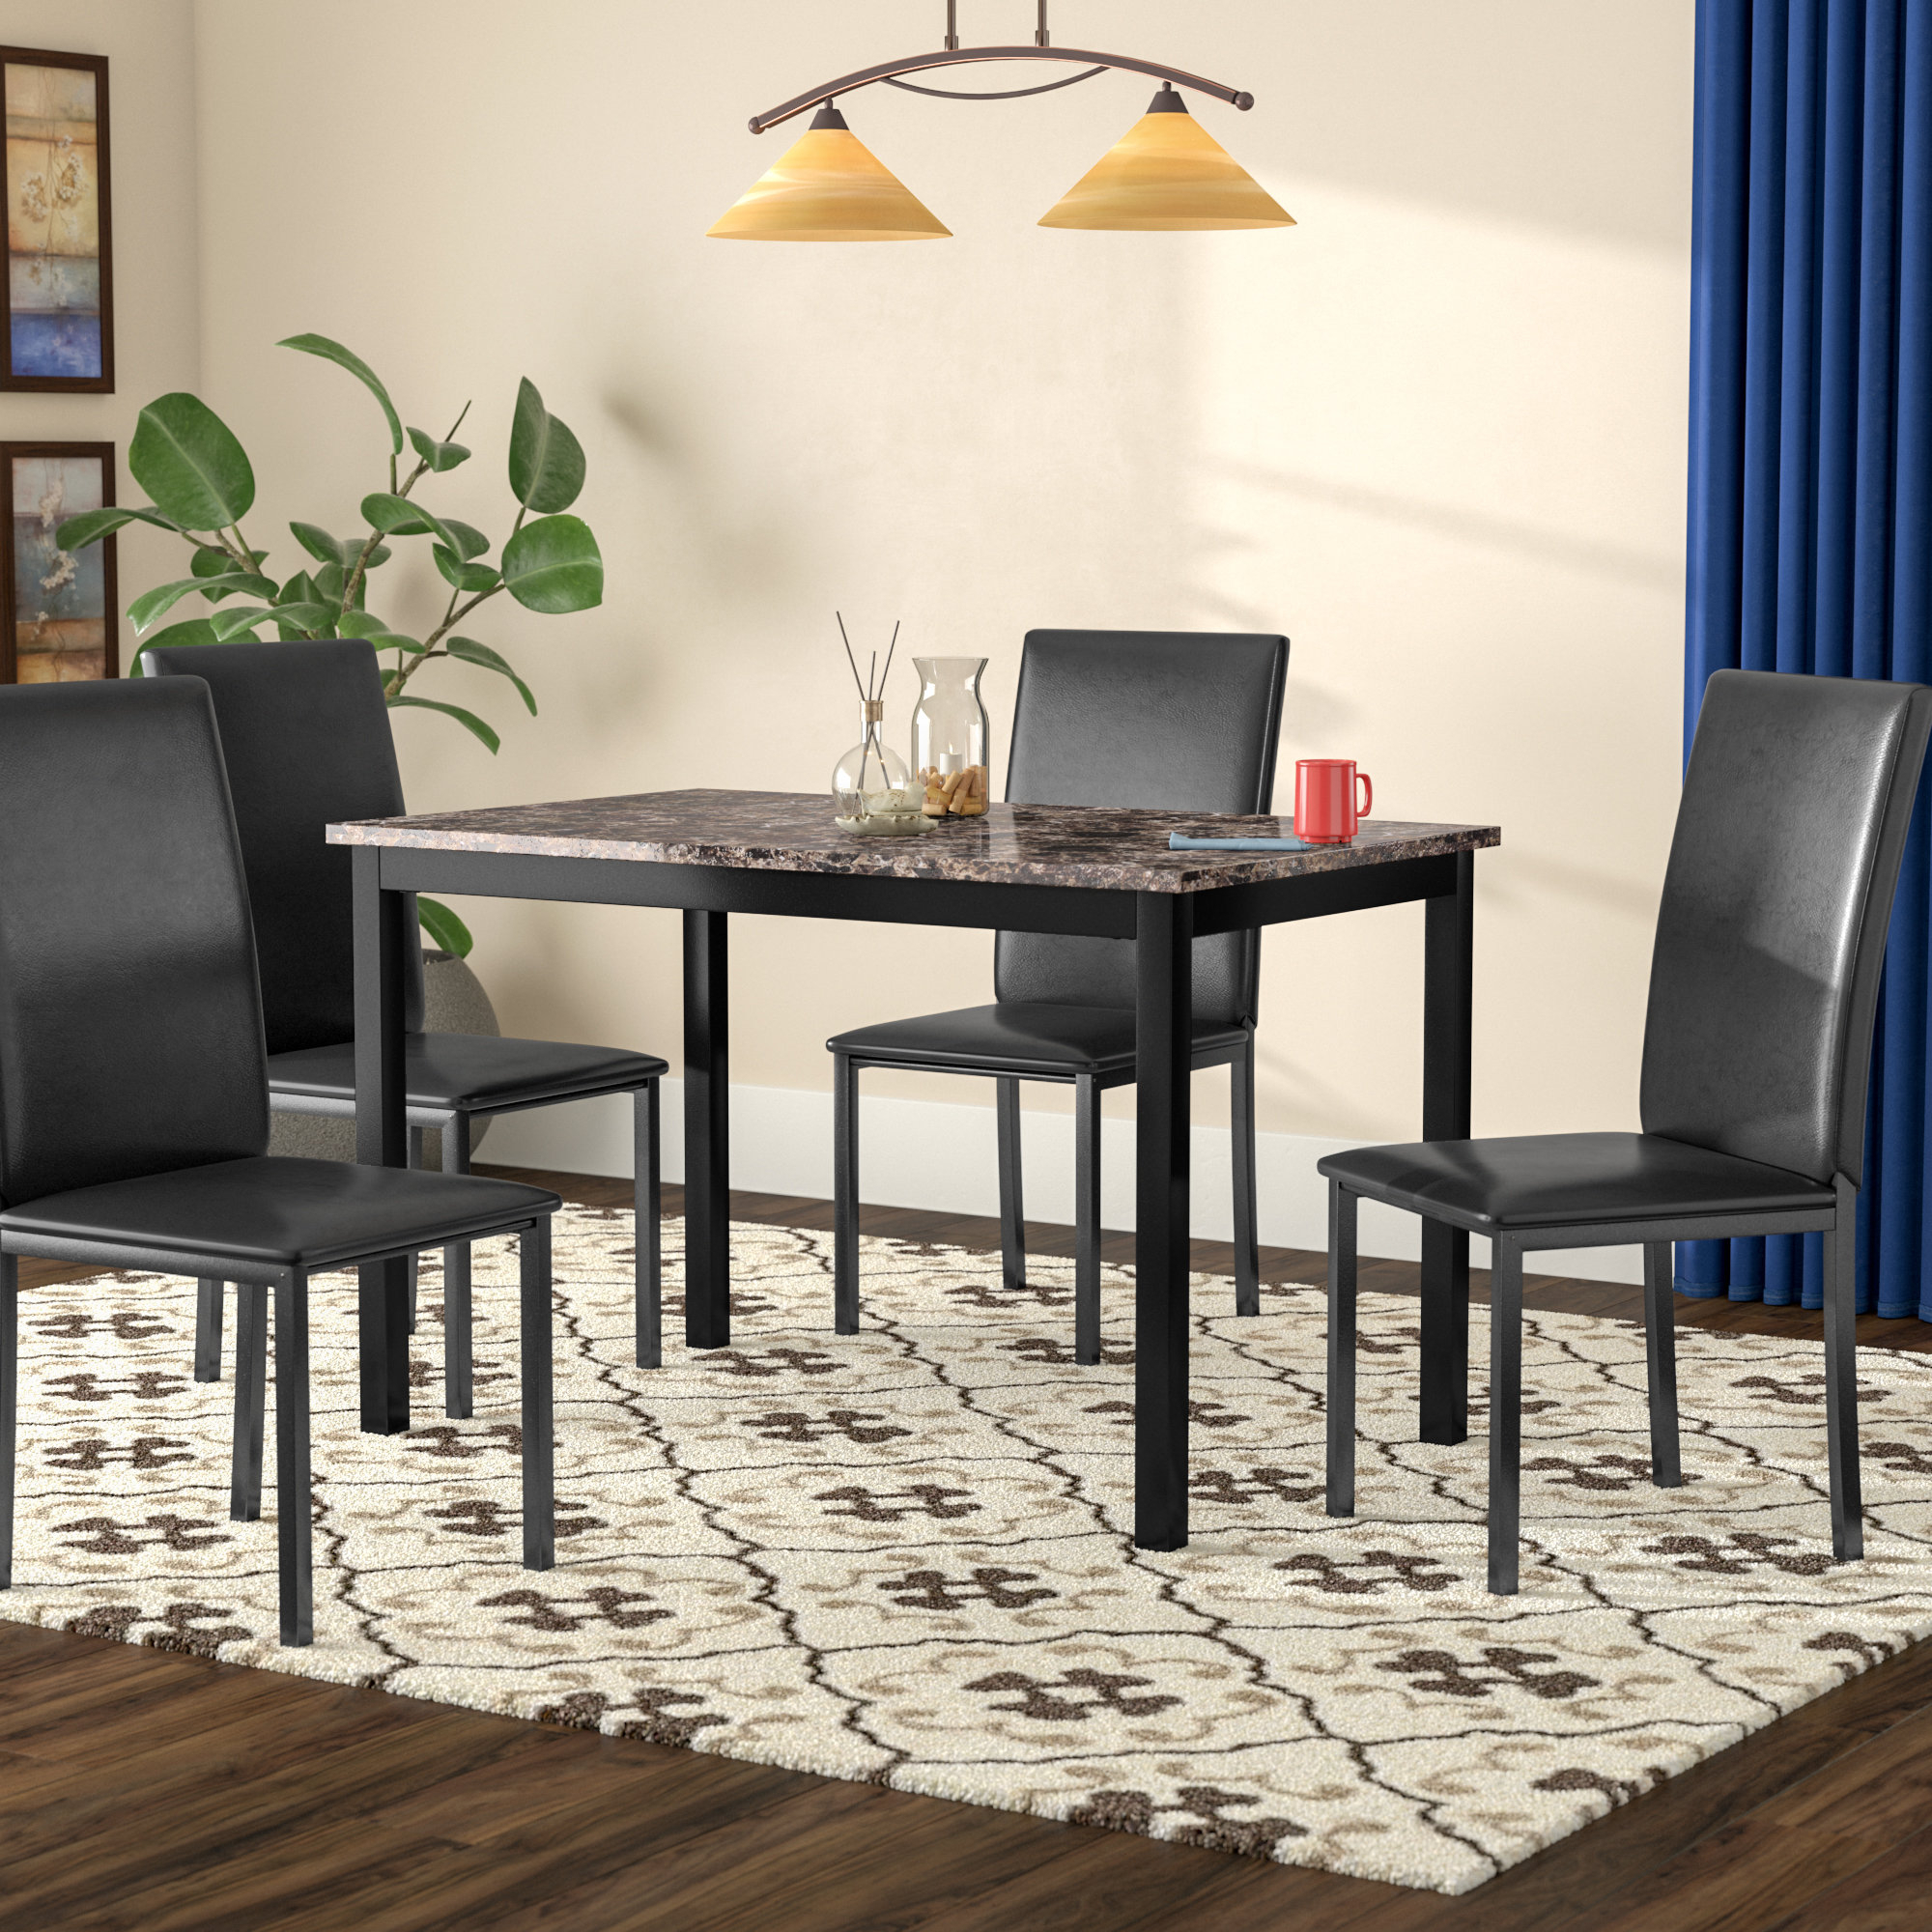 Linette 5 Piece Dining Table Sets With Regard To Well Known Red Barrel Studio Noyes 5 Piece Dining Set & Reviews (View 16 of 25)